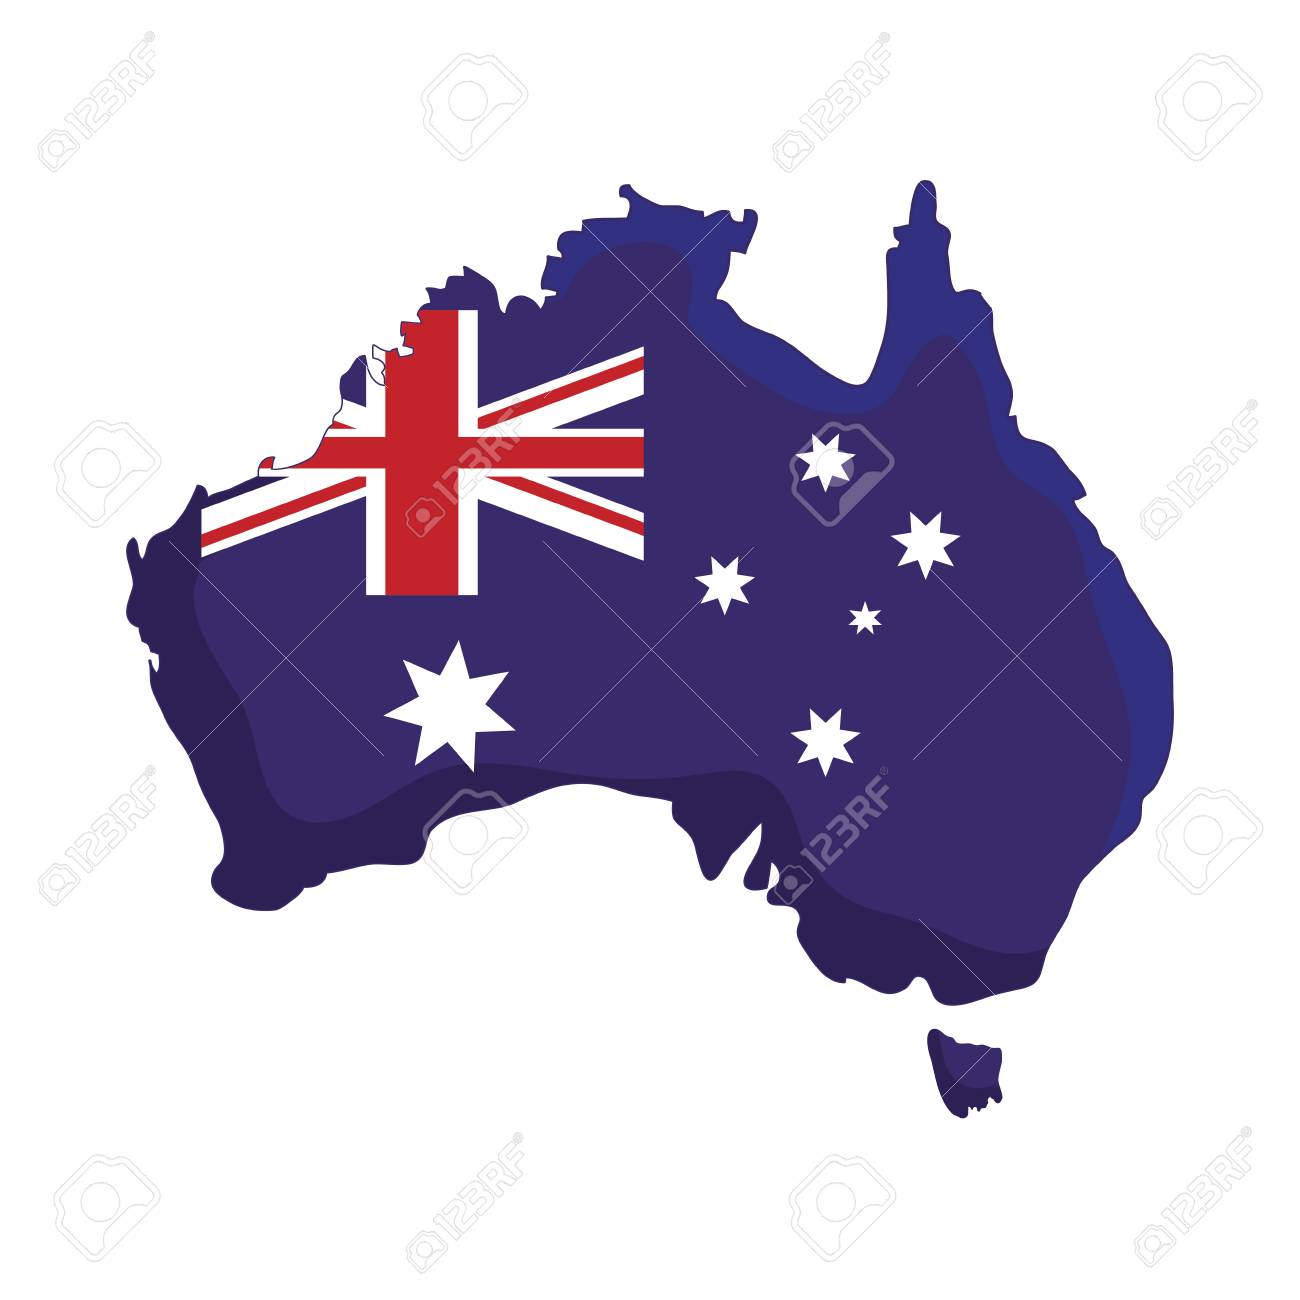 Australia Map Shape.Australia Flag In Country Map Shape Over White Background Colorful